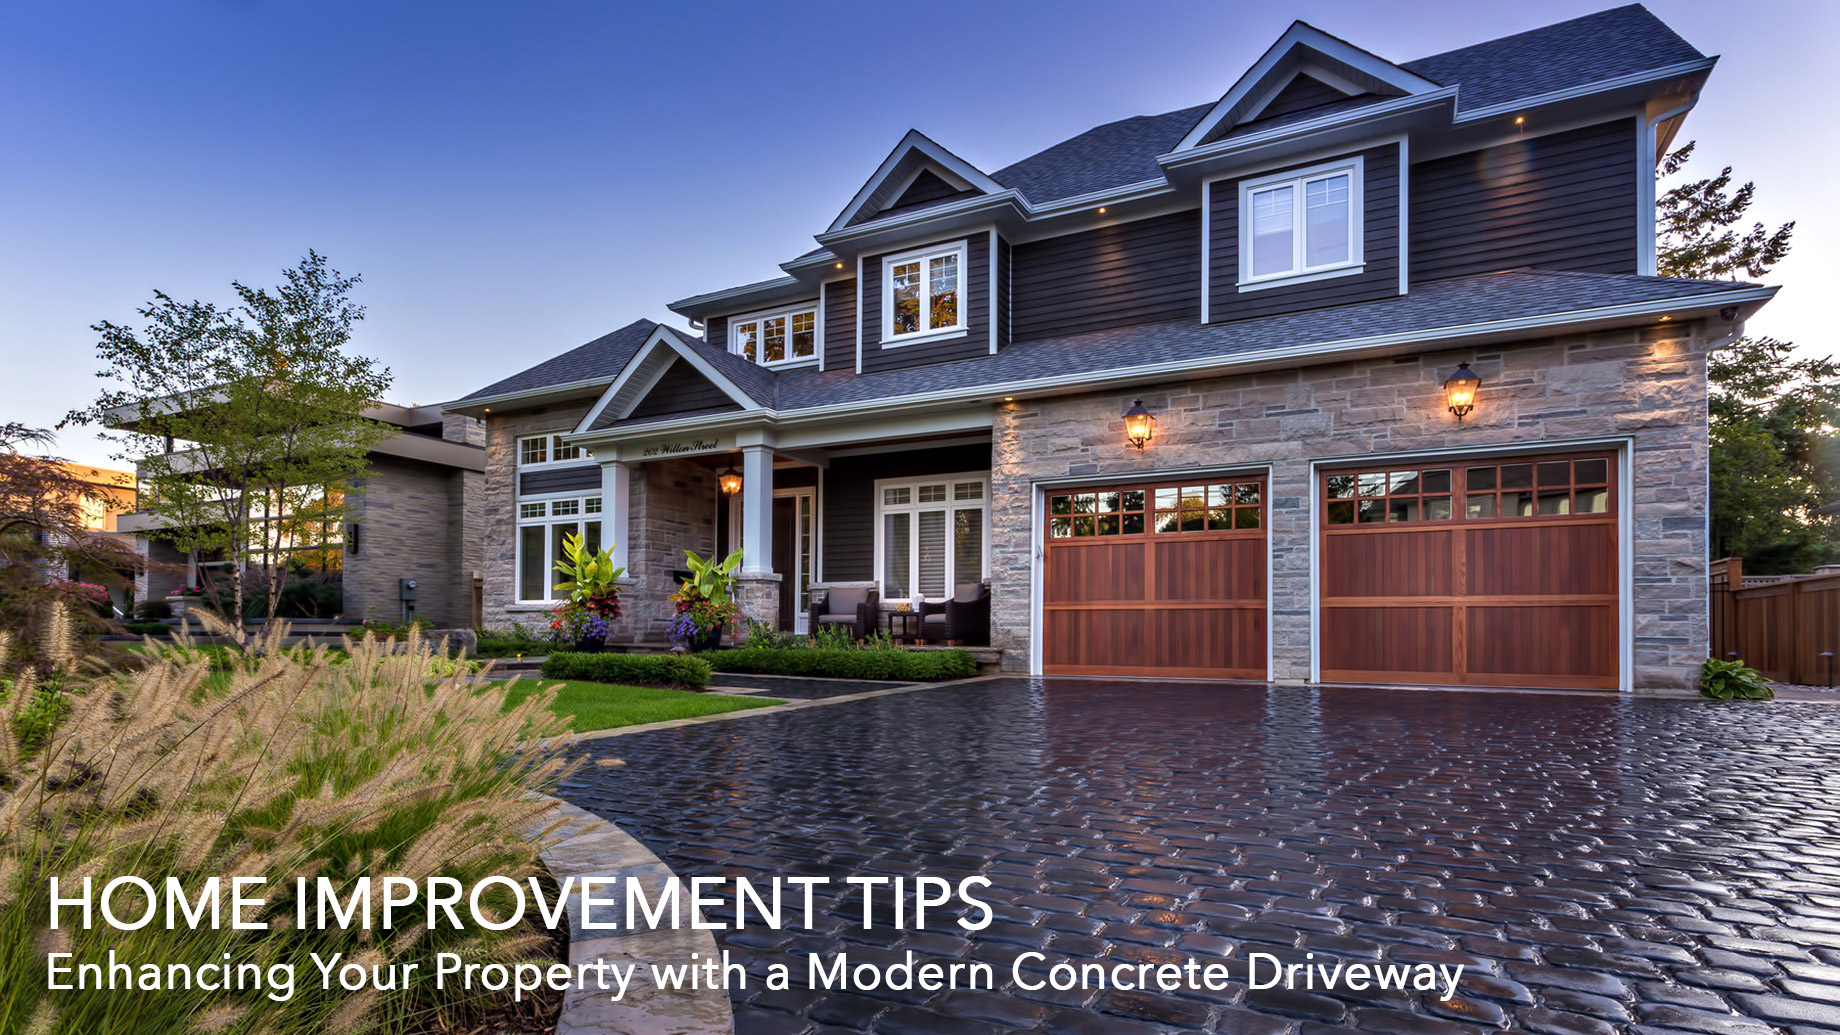 Home Improvement Tips - Enhancing Your Property with a Modern Concrete Driveway